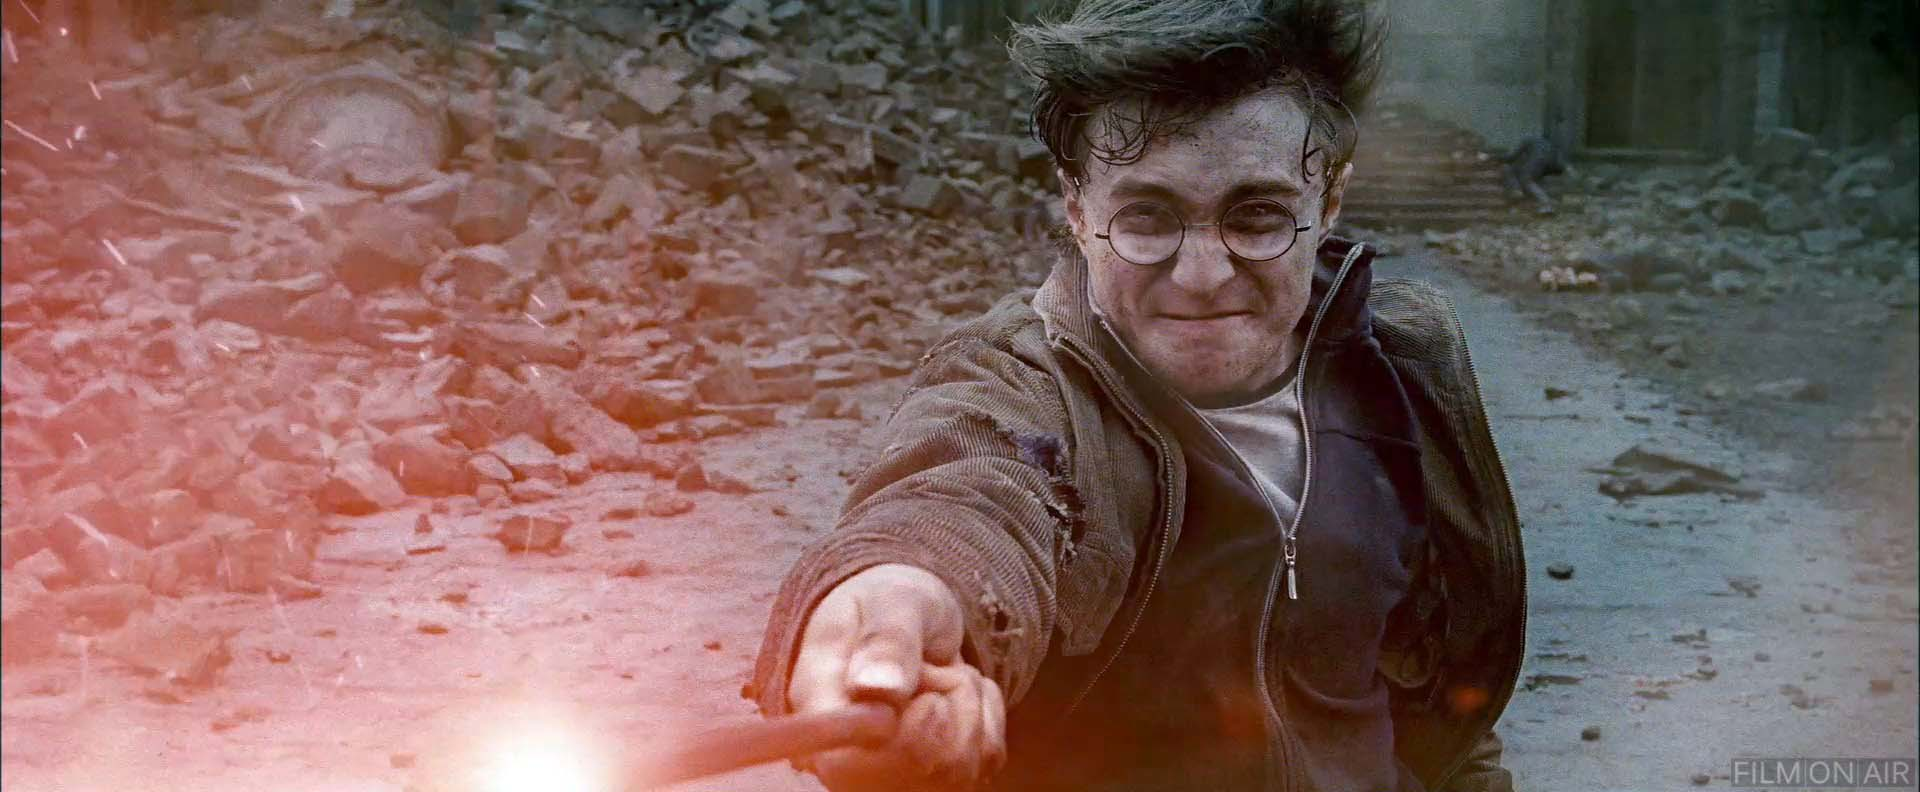 harry potter shooting his wand at the virus